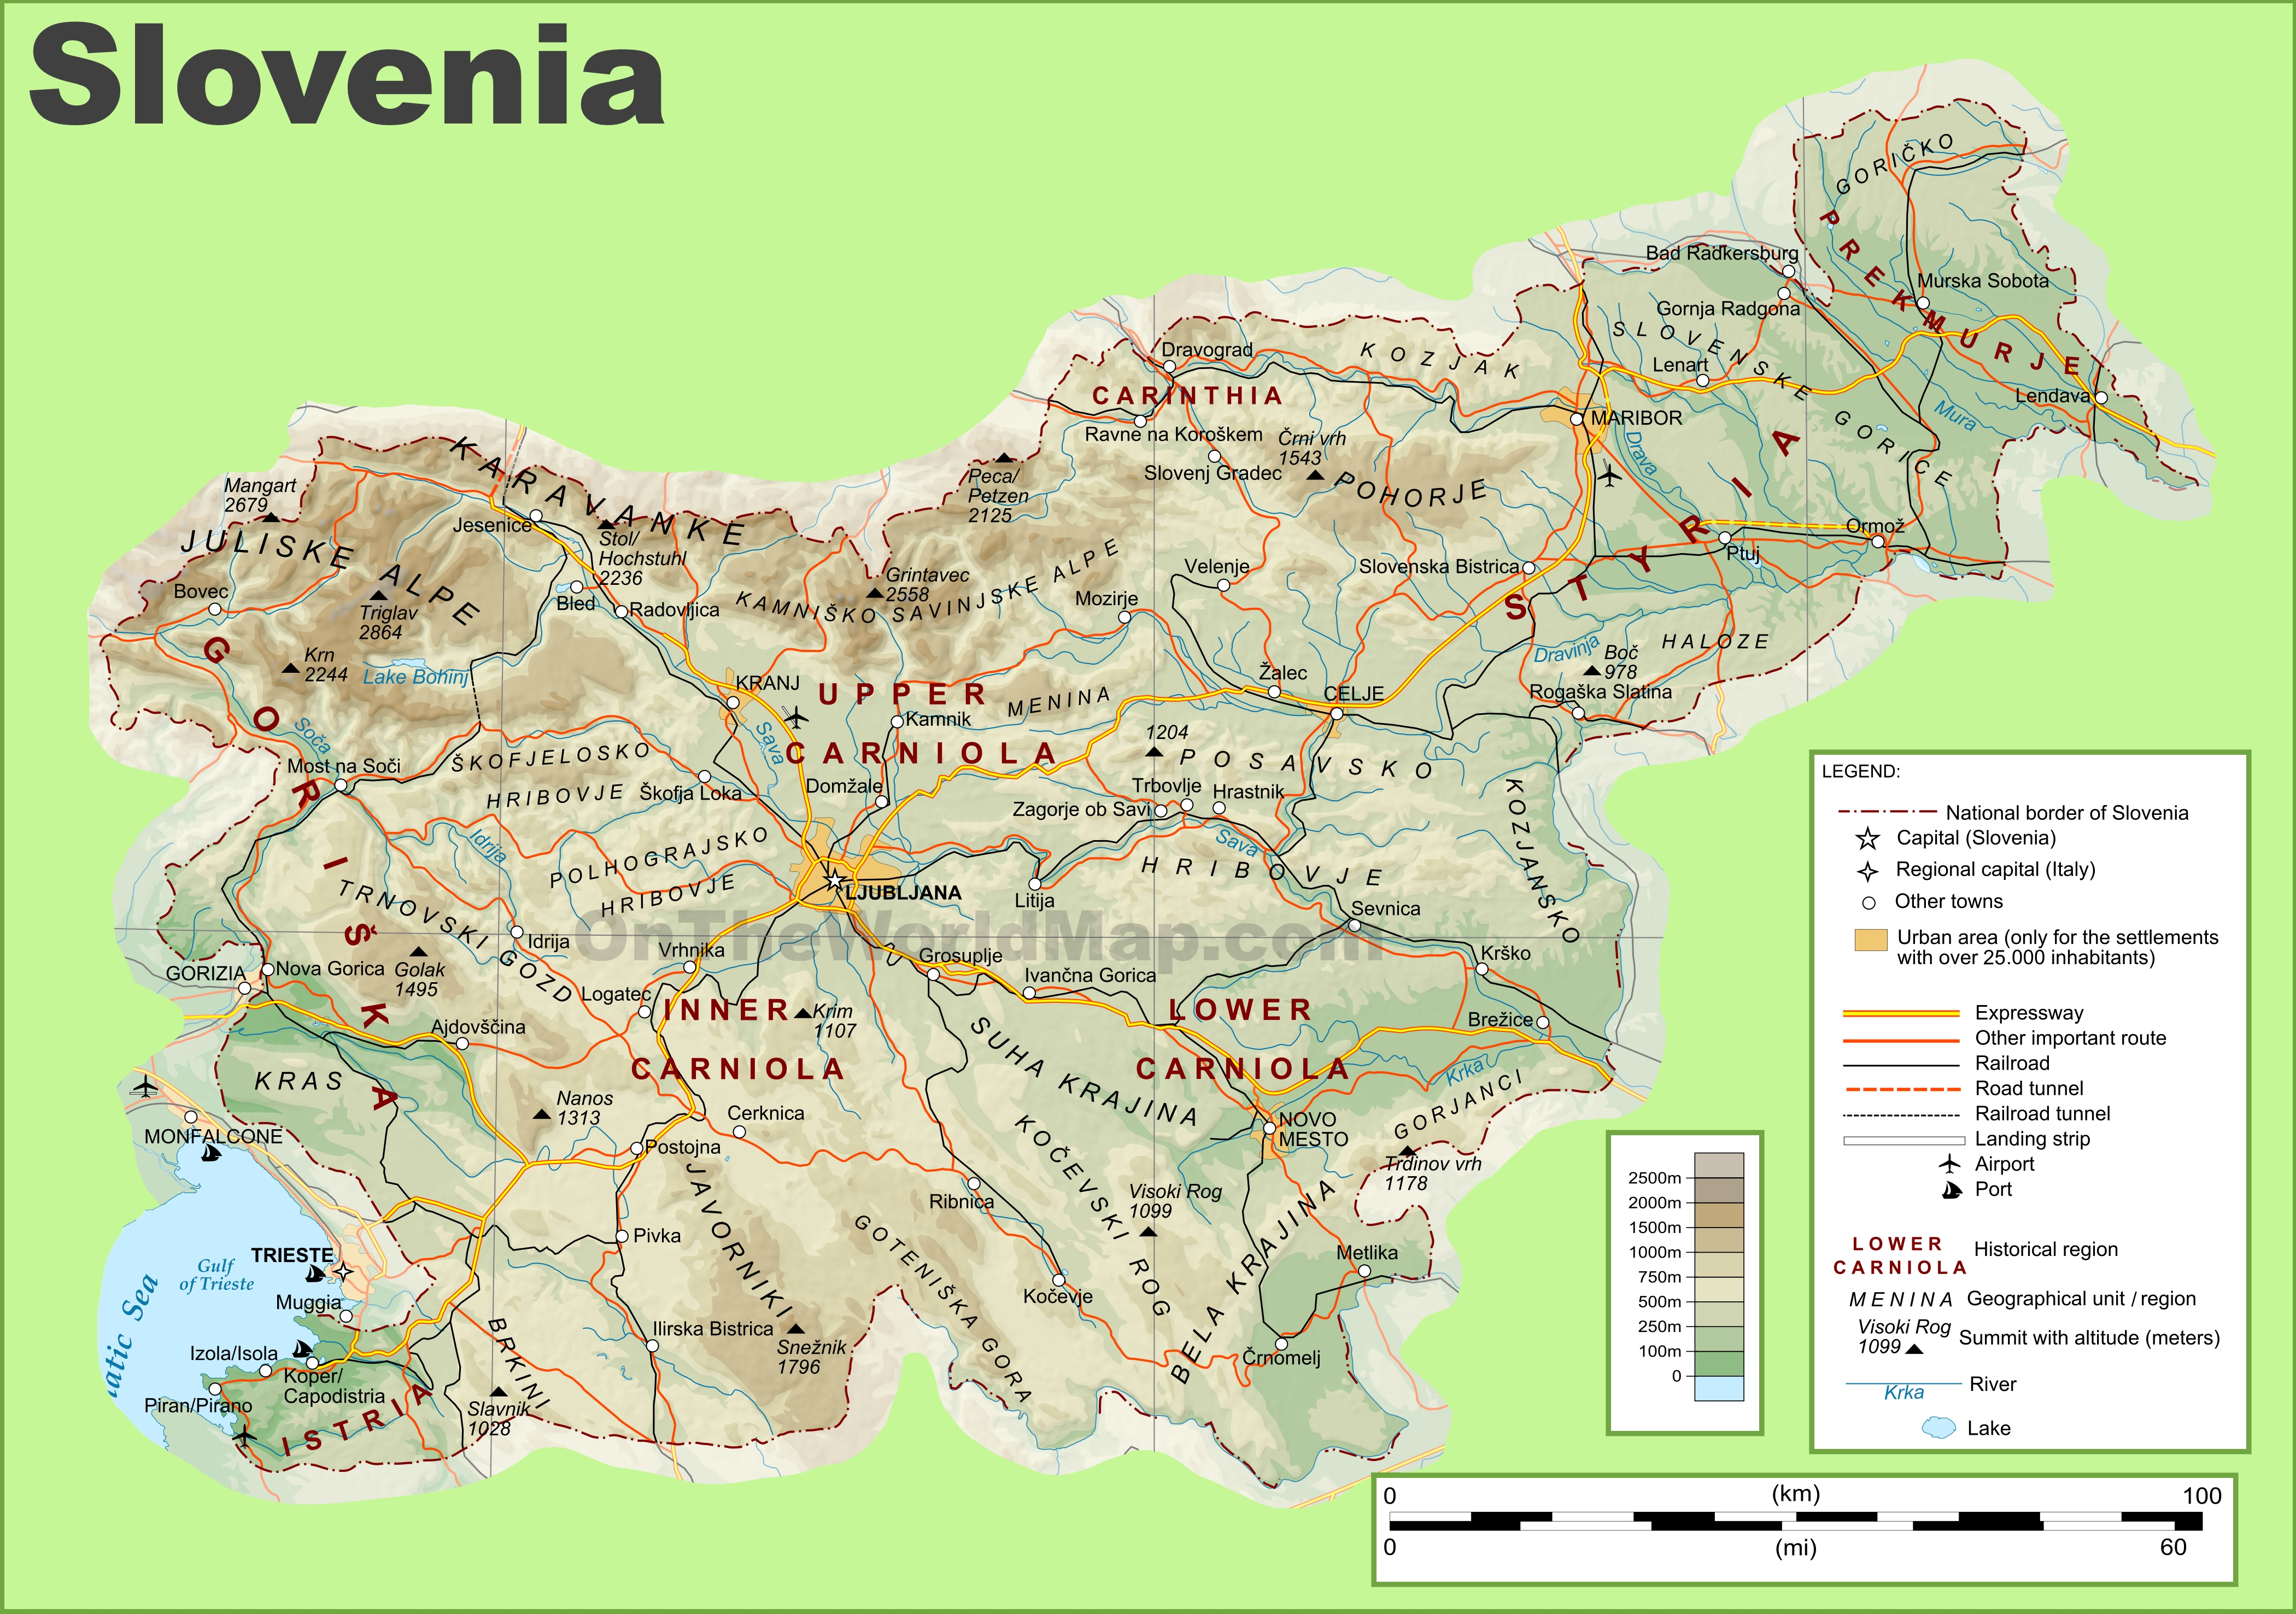 Slovenia Map Fotolip Com Rich Image And Wallpaper